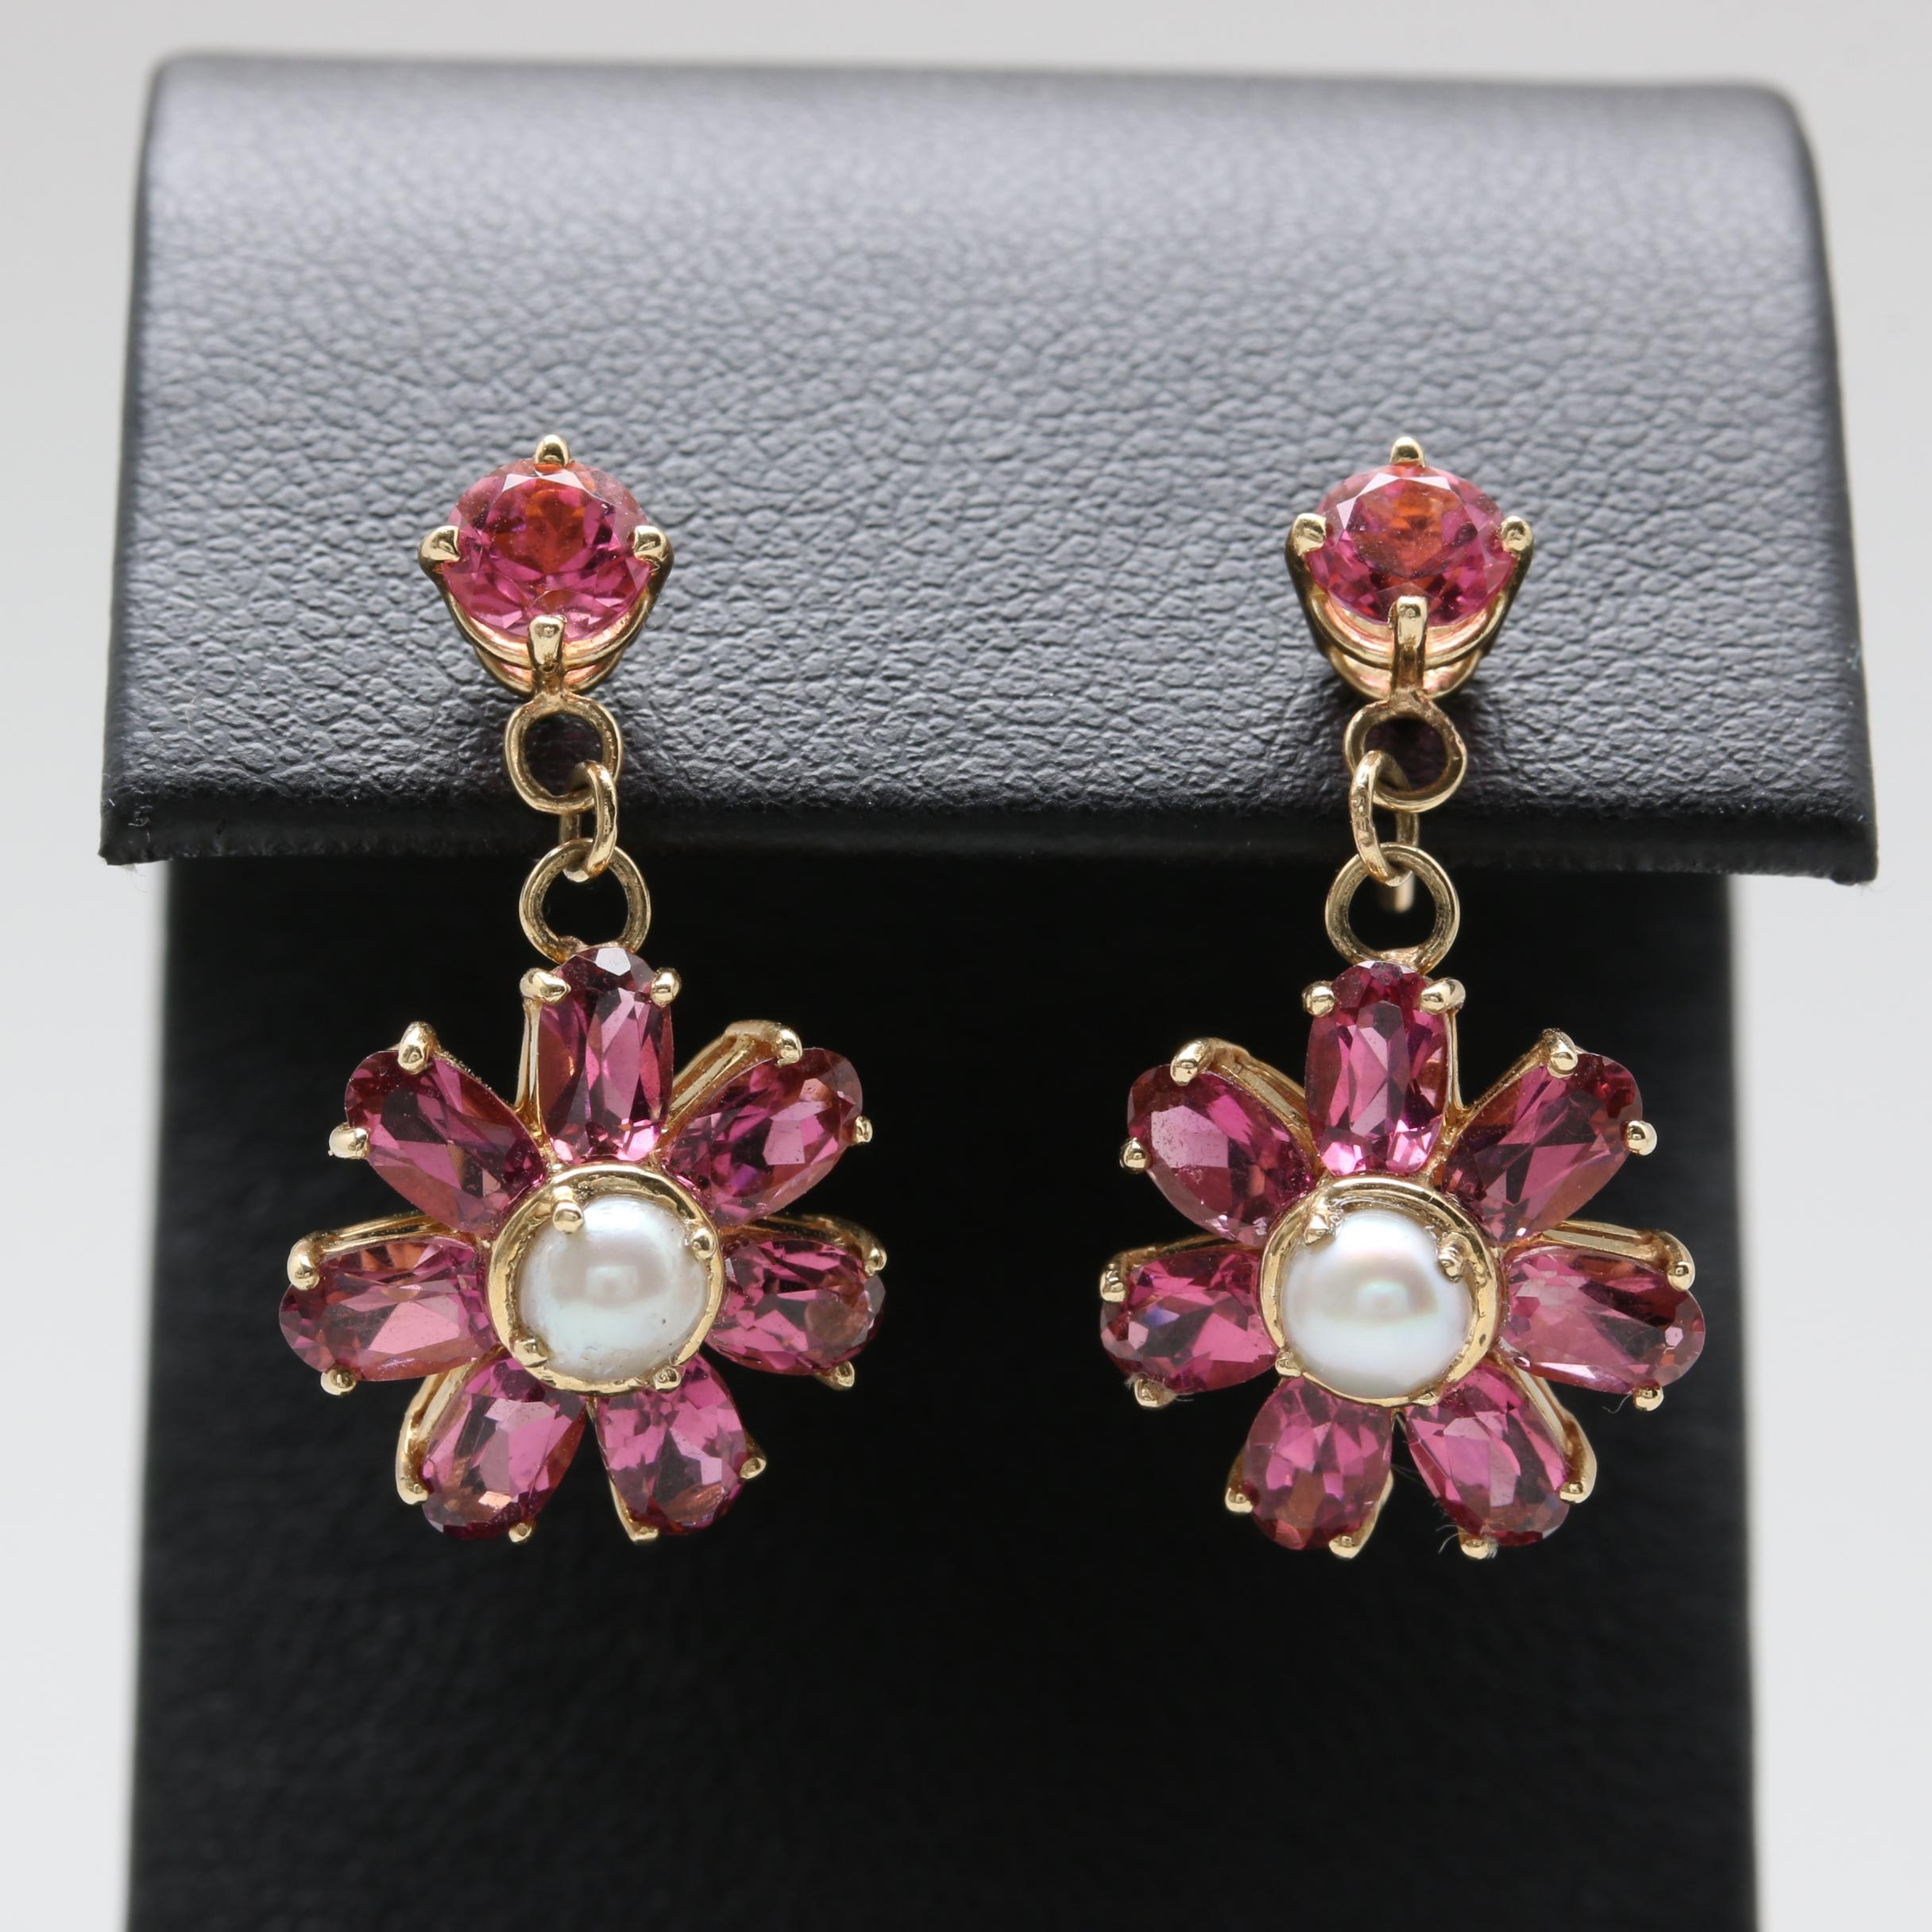 14K Yellow Gold Cultured Pearl and Pink Tourmaline Floral Drop Earrings